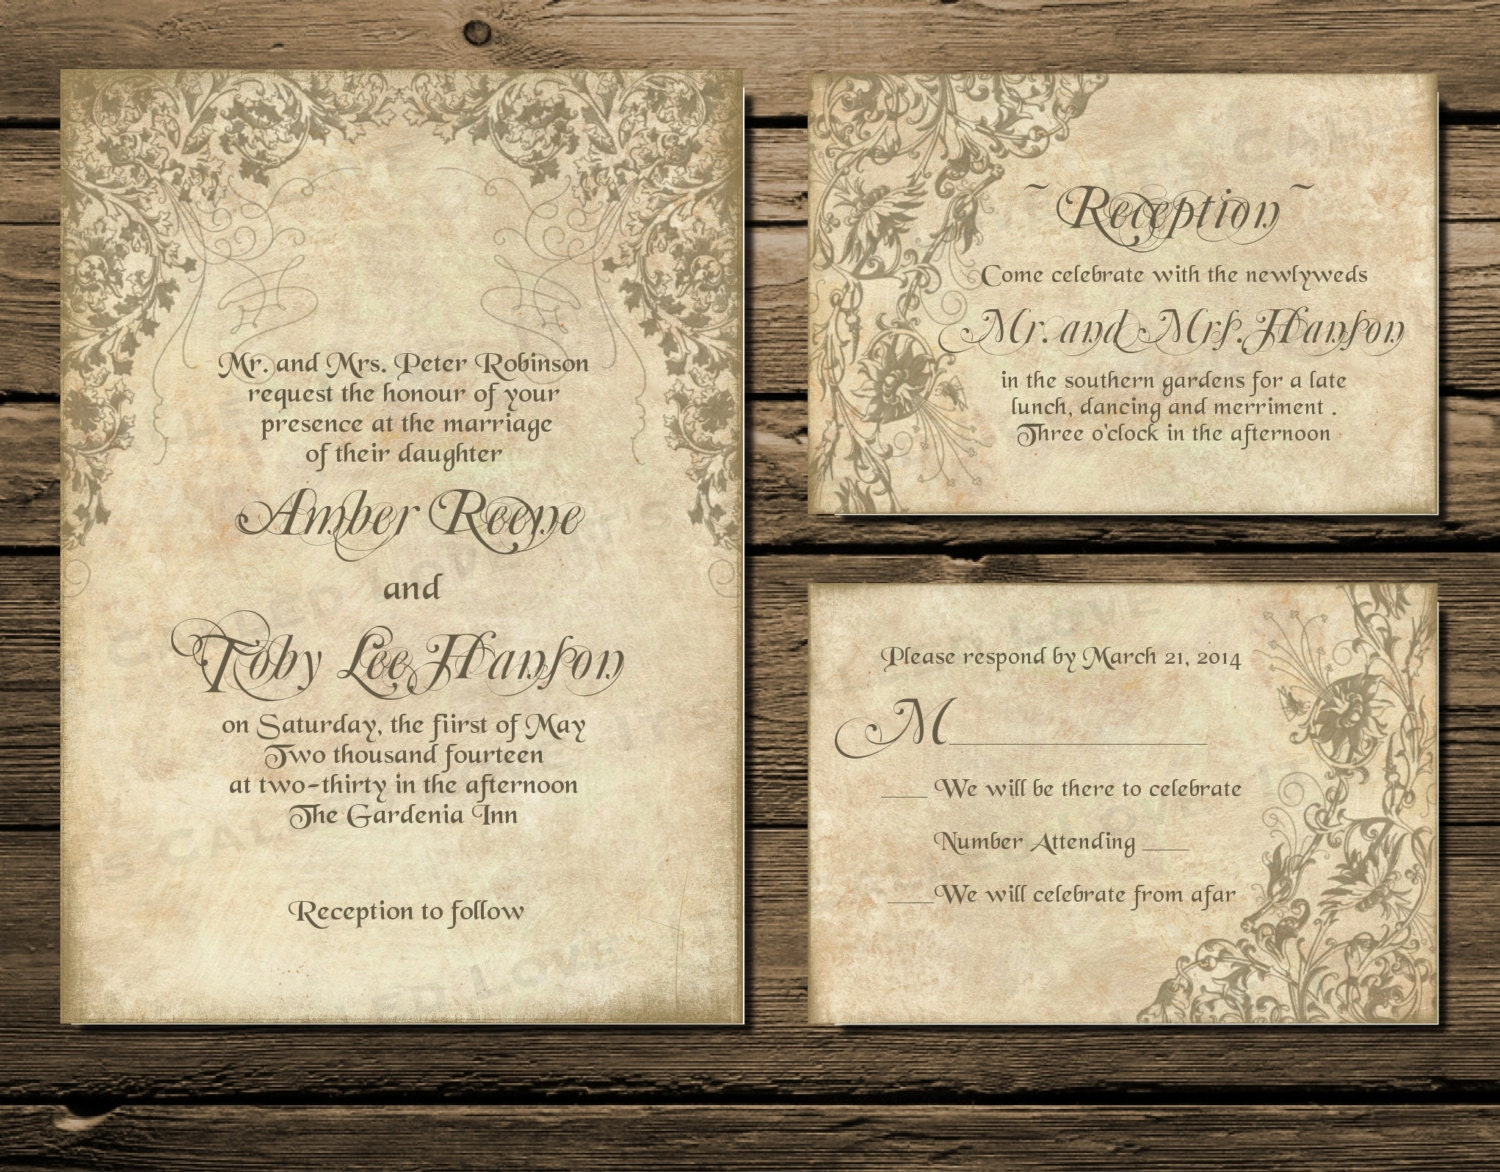 Printable Wedding Invitation Download, Invite, RSVP Info